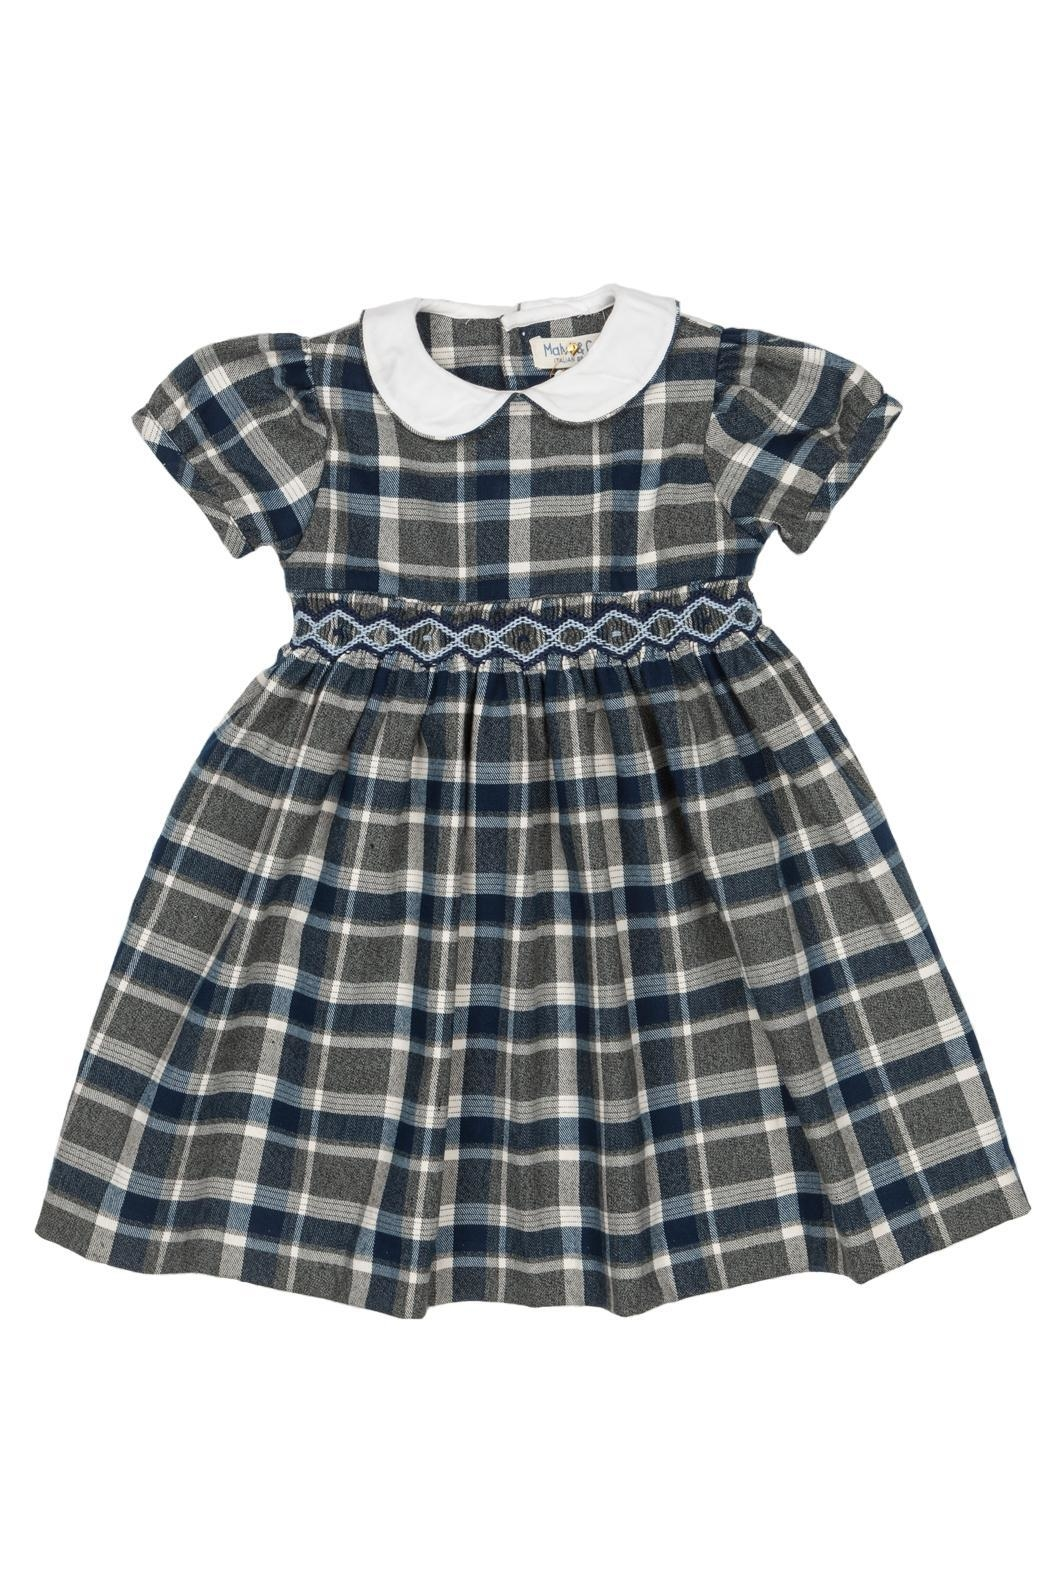 Malvi & Co. Grey Tartan Dress. - Main Image